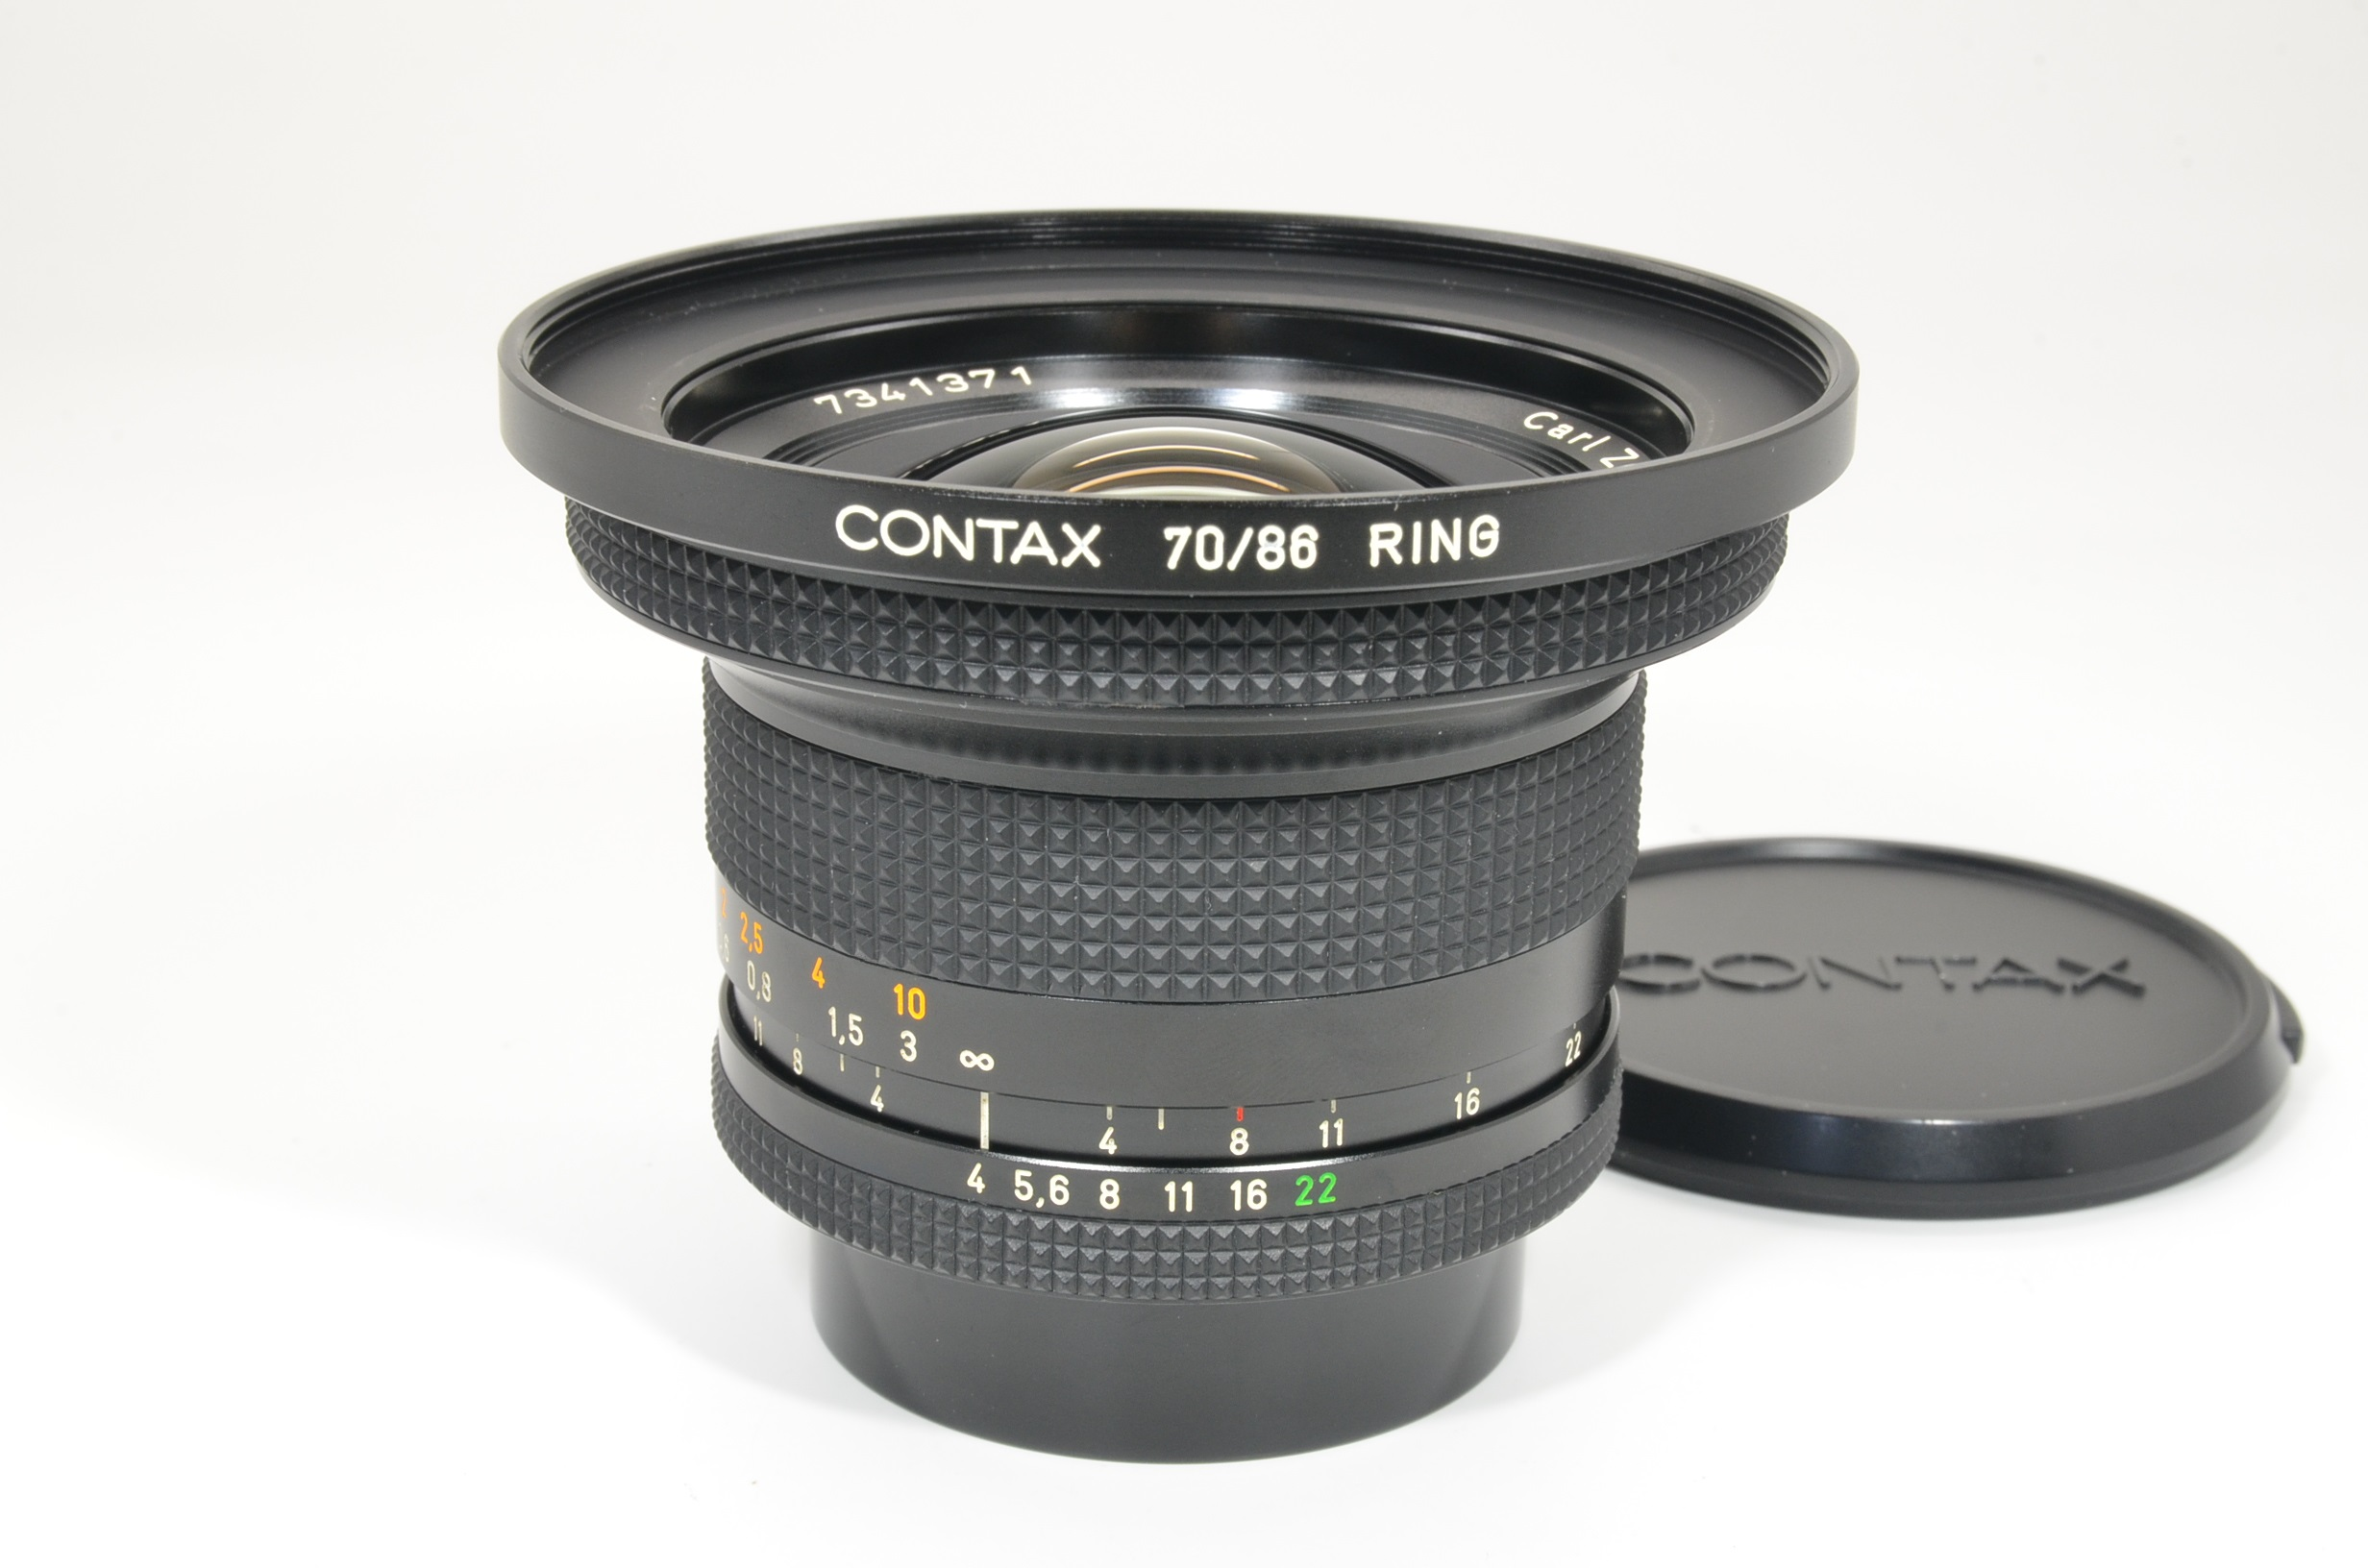 contax carl zeiss distagon t* 18mm f4 mmj japan with 70/86 ring  shooting